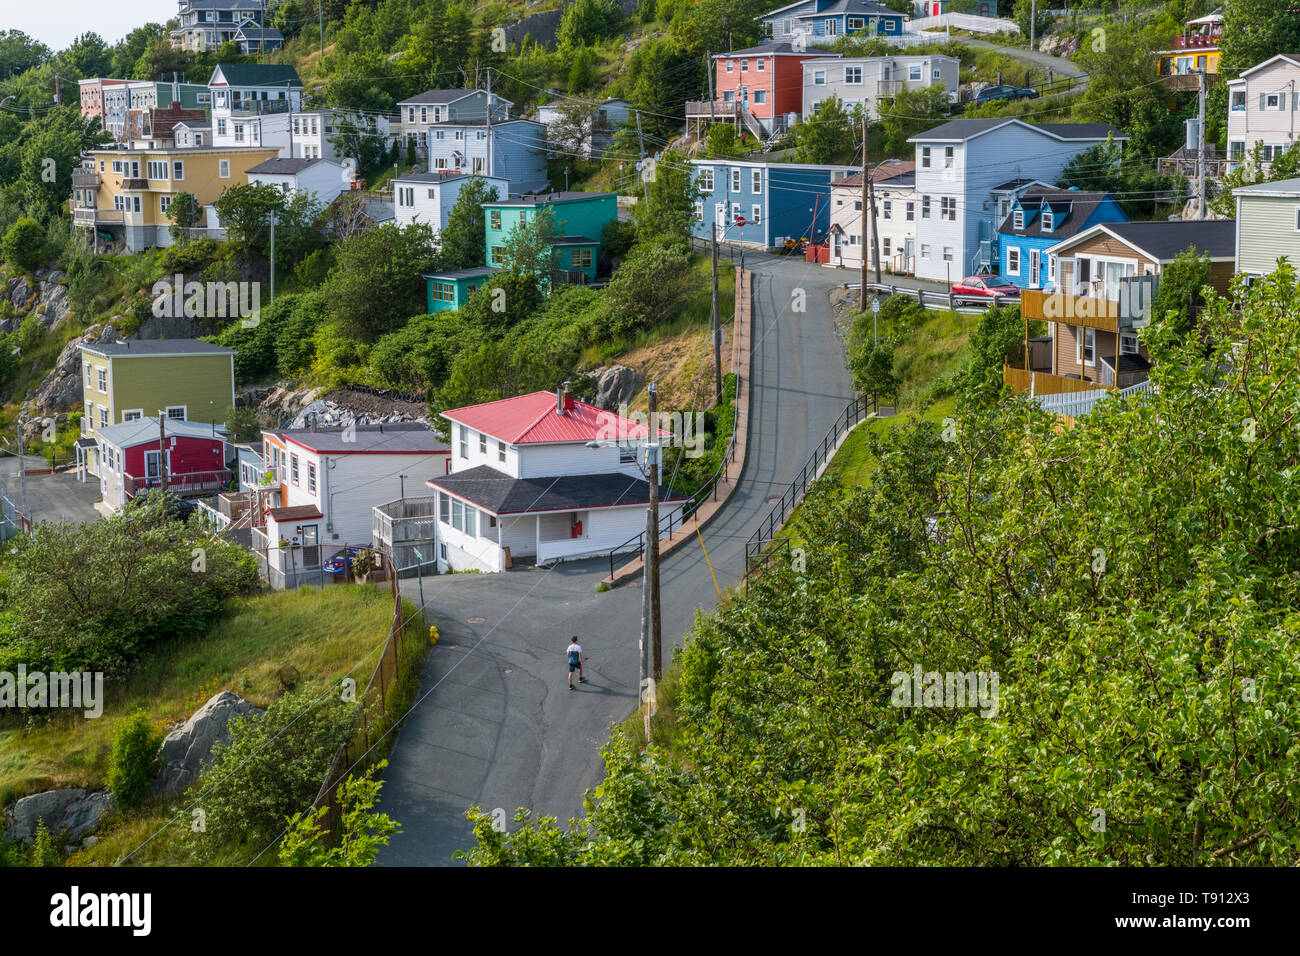 Residential homes, in The Battery area, Downtown St. John's, Newfoundland, Summer, 2018 - Stock Image